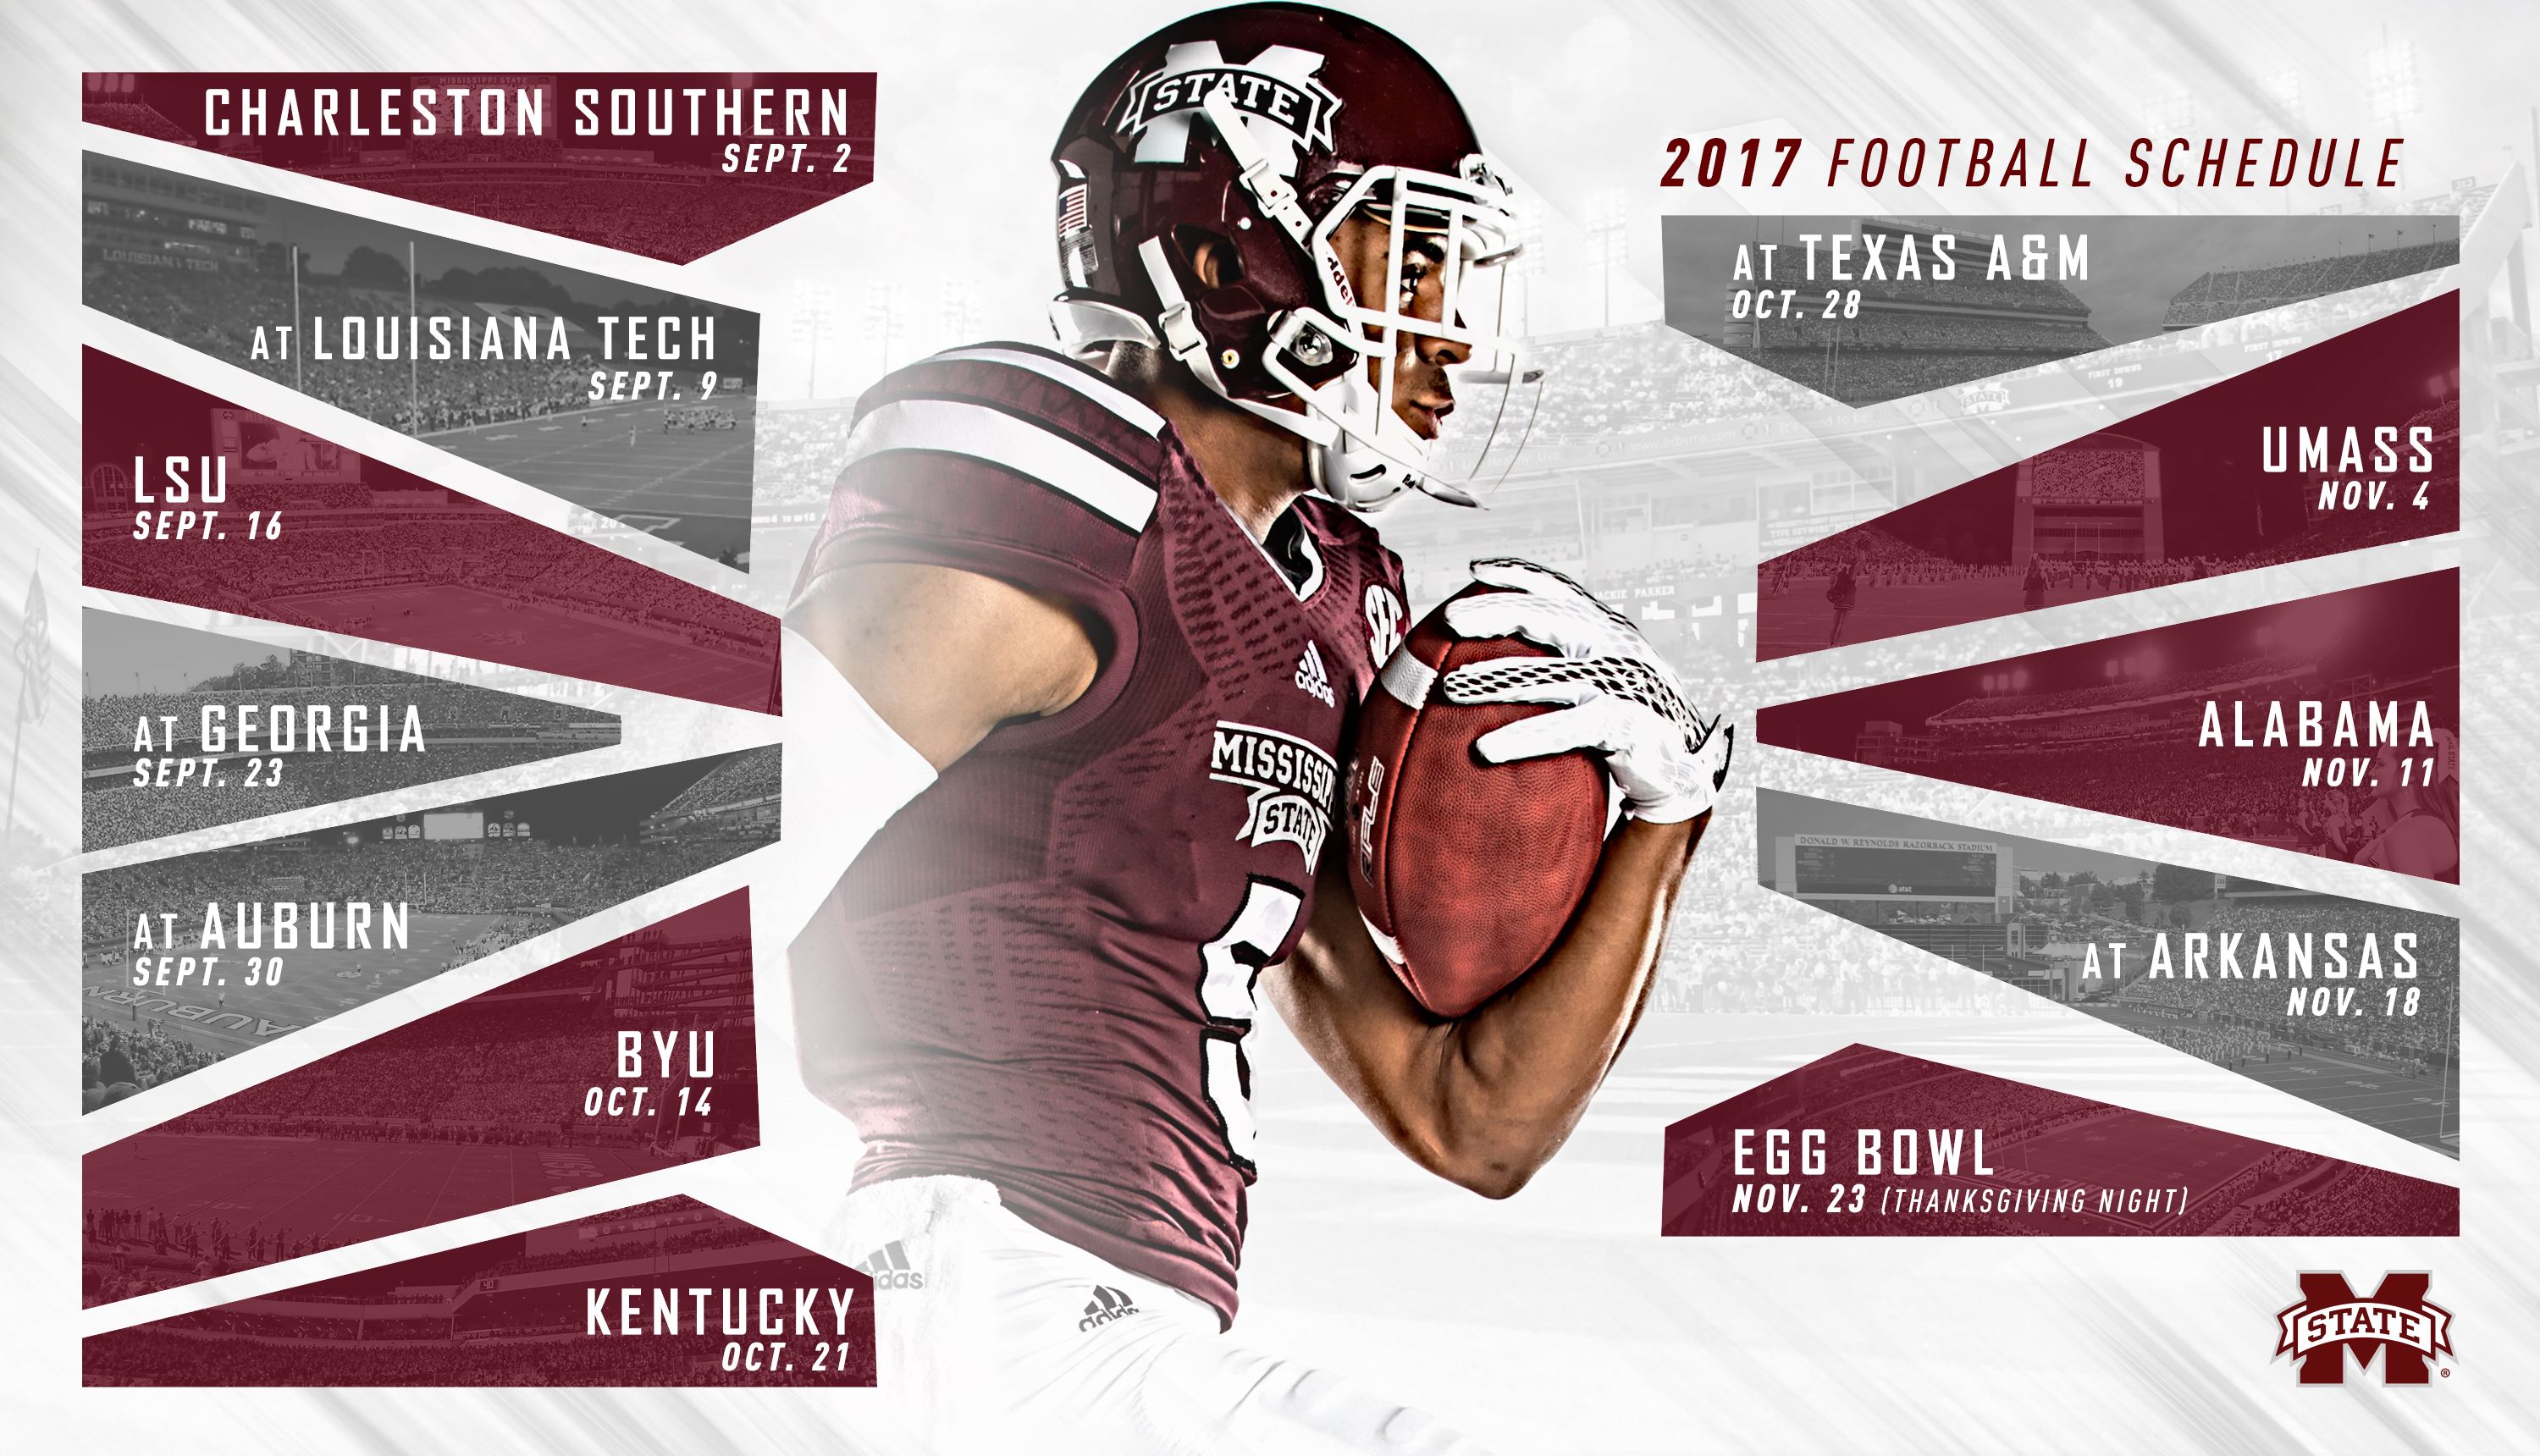 2017 msu football schedule unveiled, egg bowl to return to